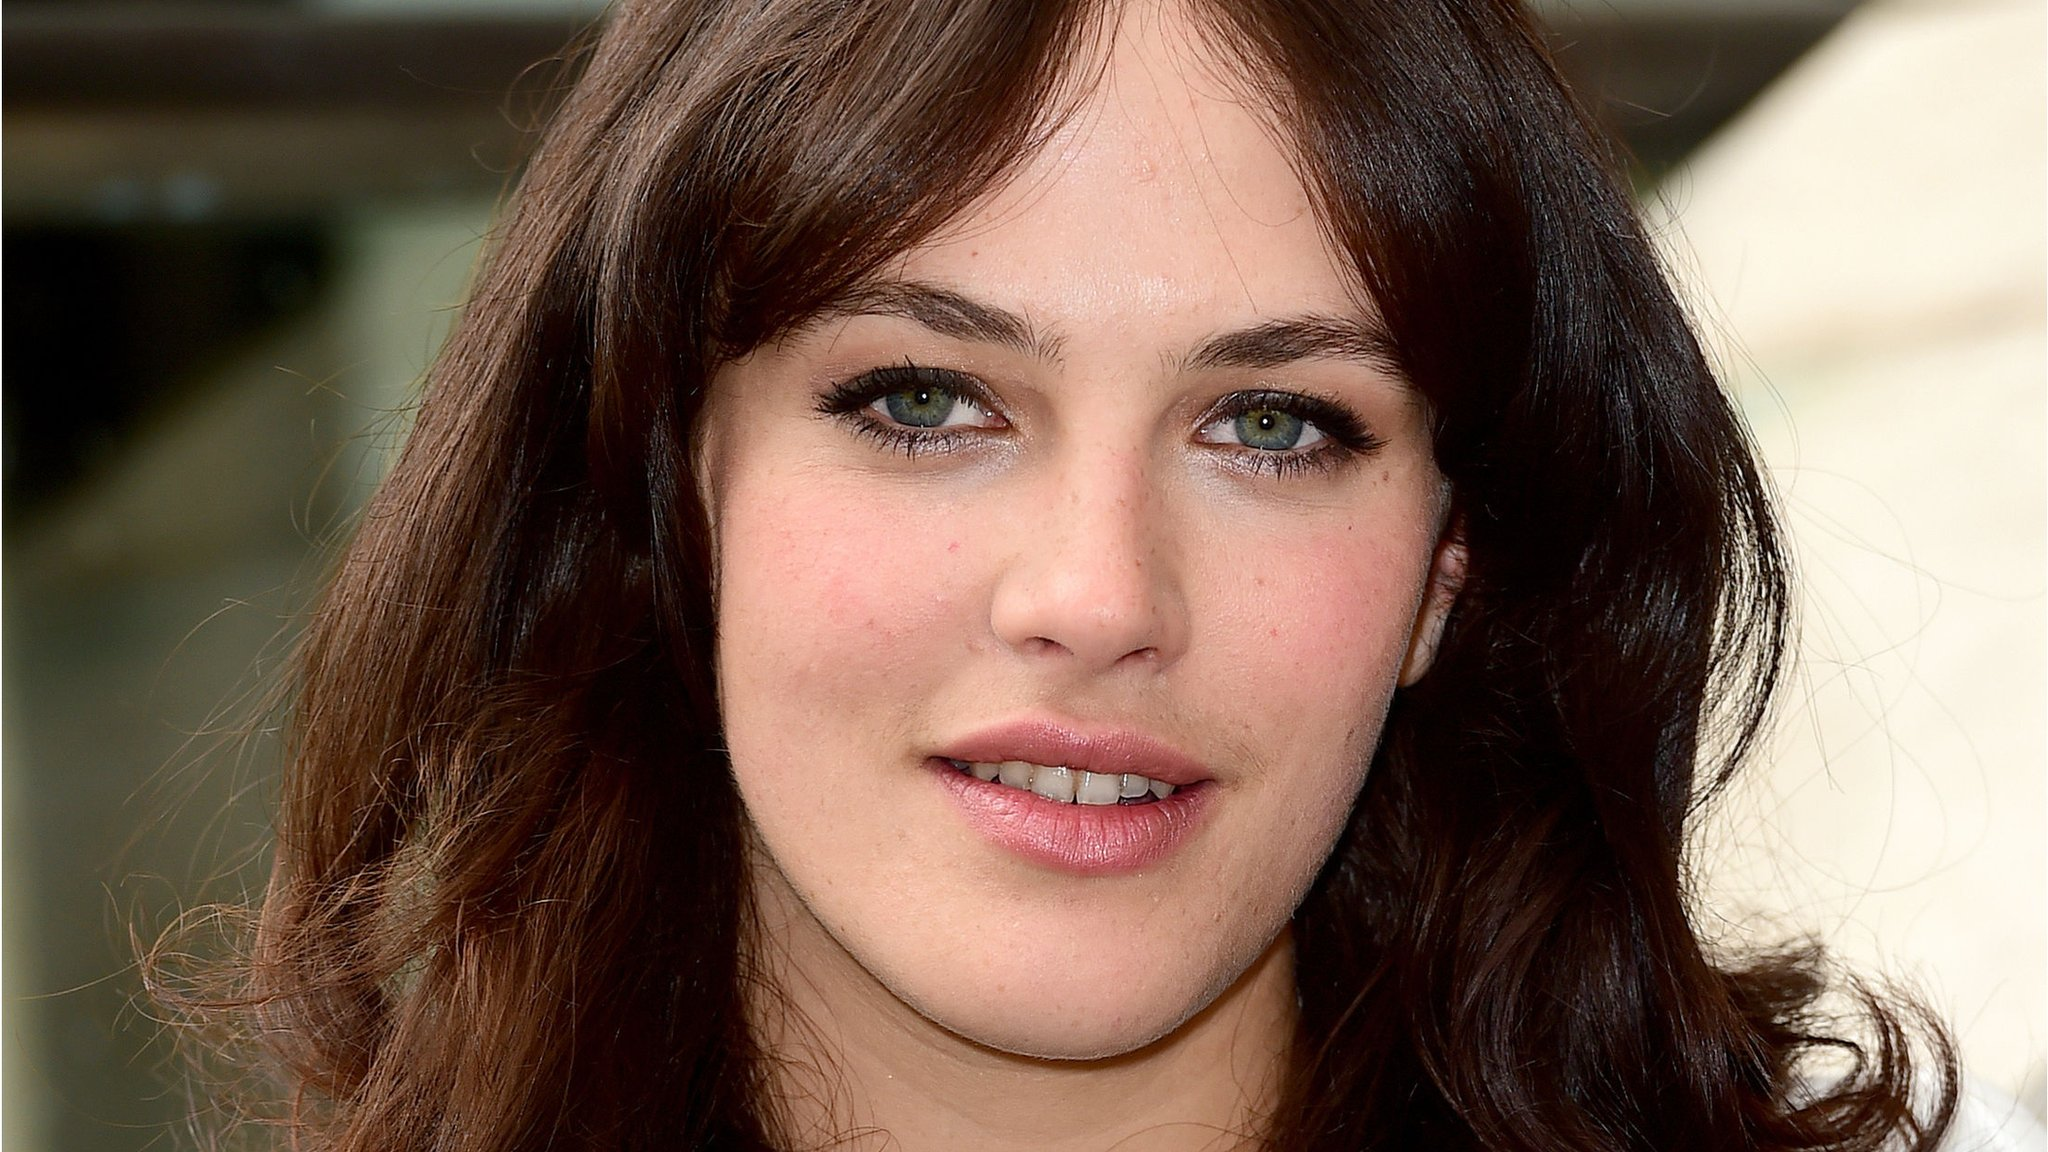 Downton Abbey actress Jessica Brown Findlay joins Hamlet production